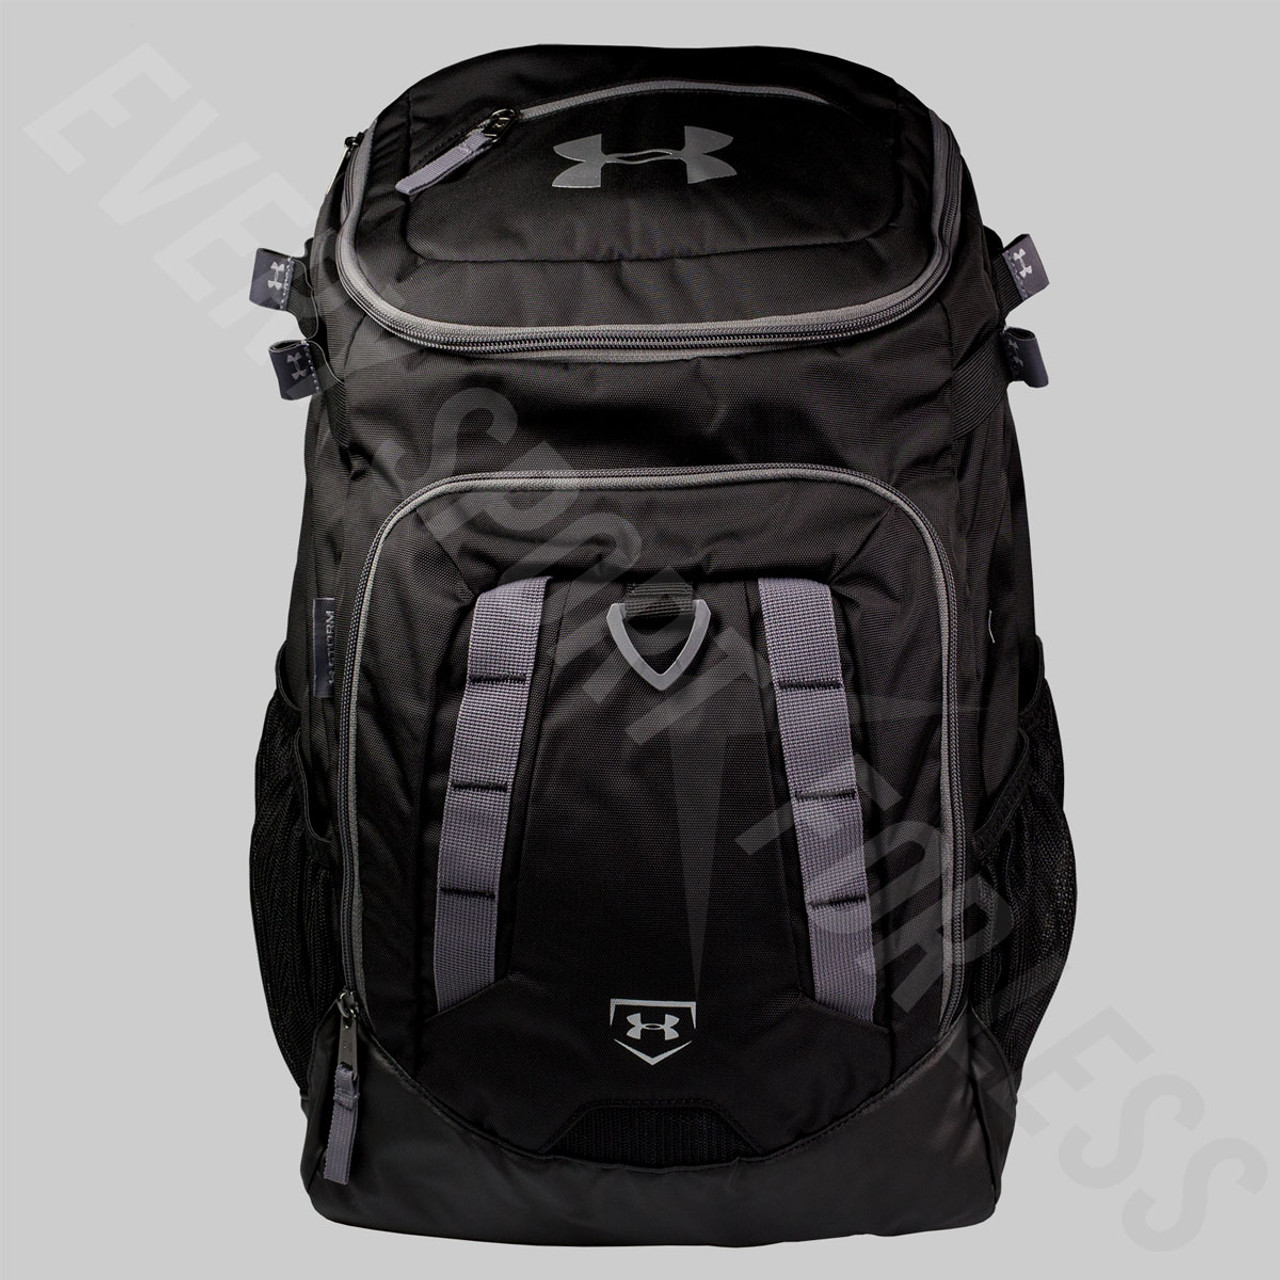 31b08f7f5fe9 Under Armour Undeniable Baseball / Softball Bat Backpack